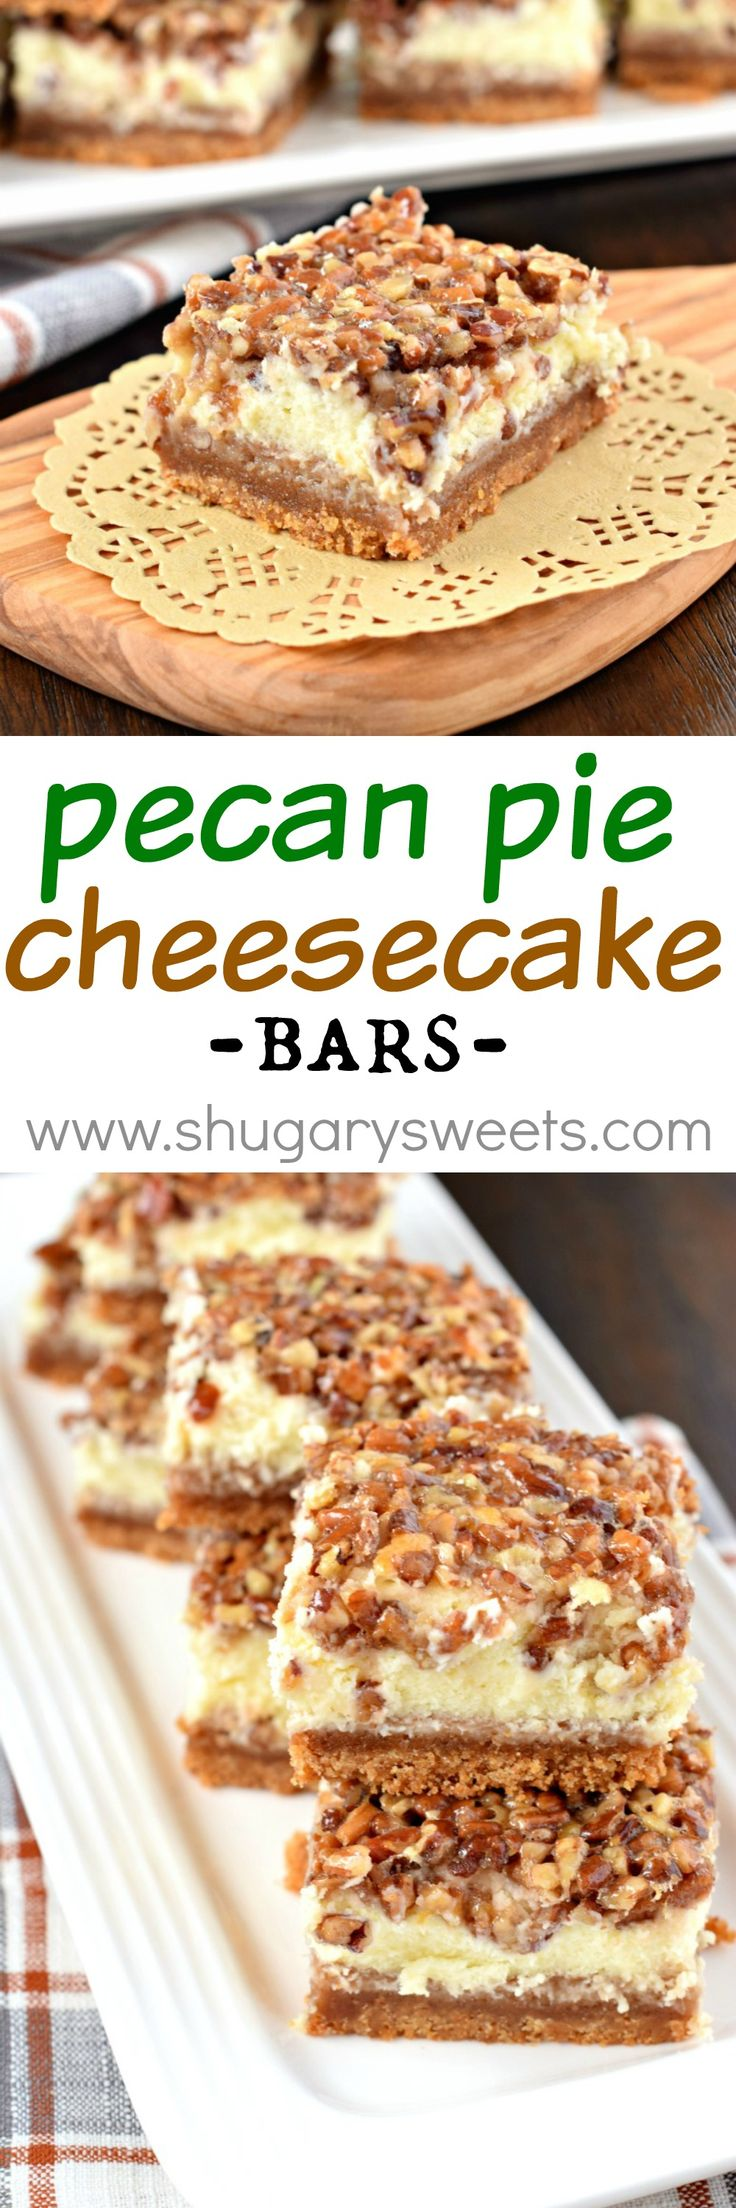 17 Best ideas about Pecan Pie Cheesecake on Pinterest ...